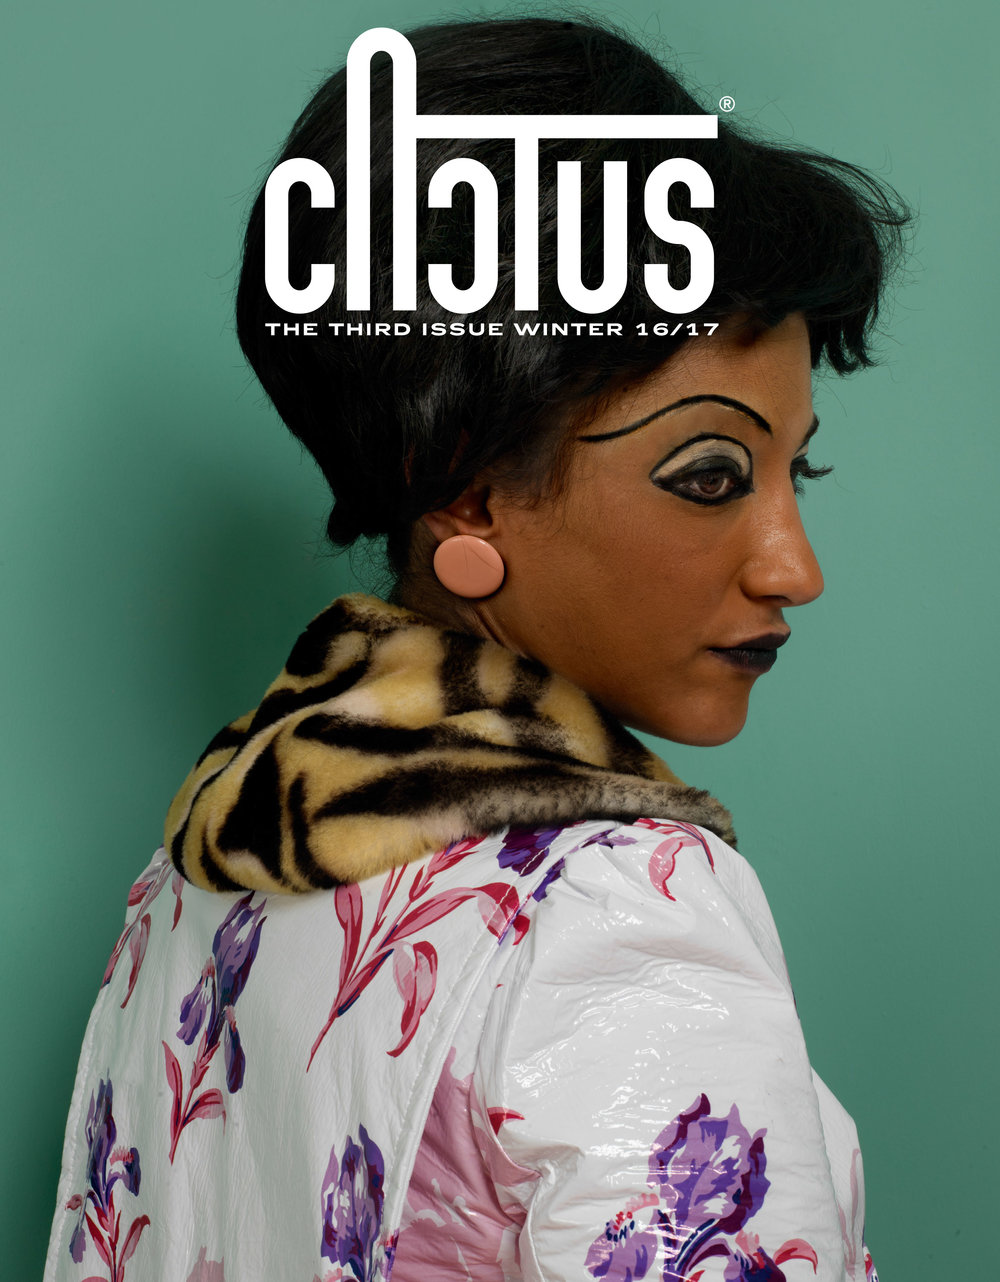 LUCA_SMORGON_Cactus_digitale_magazine_COVER_issue_3.jpg